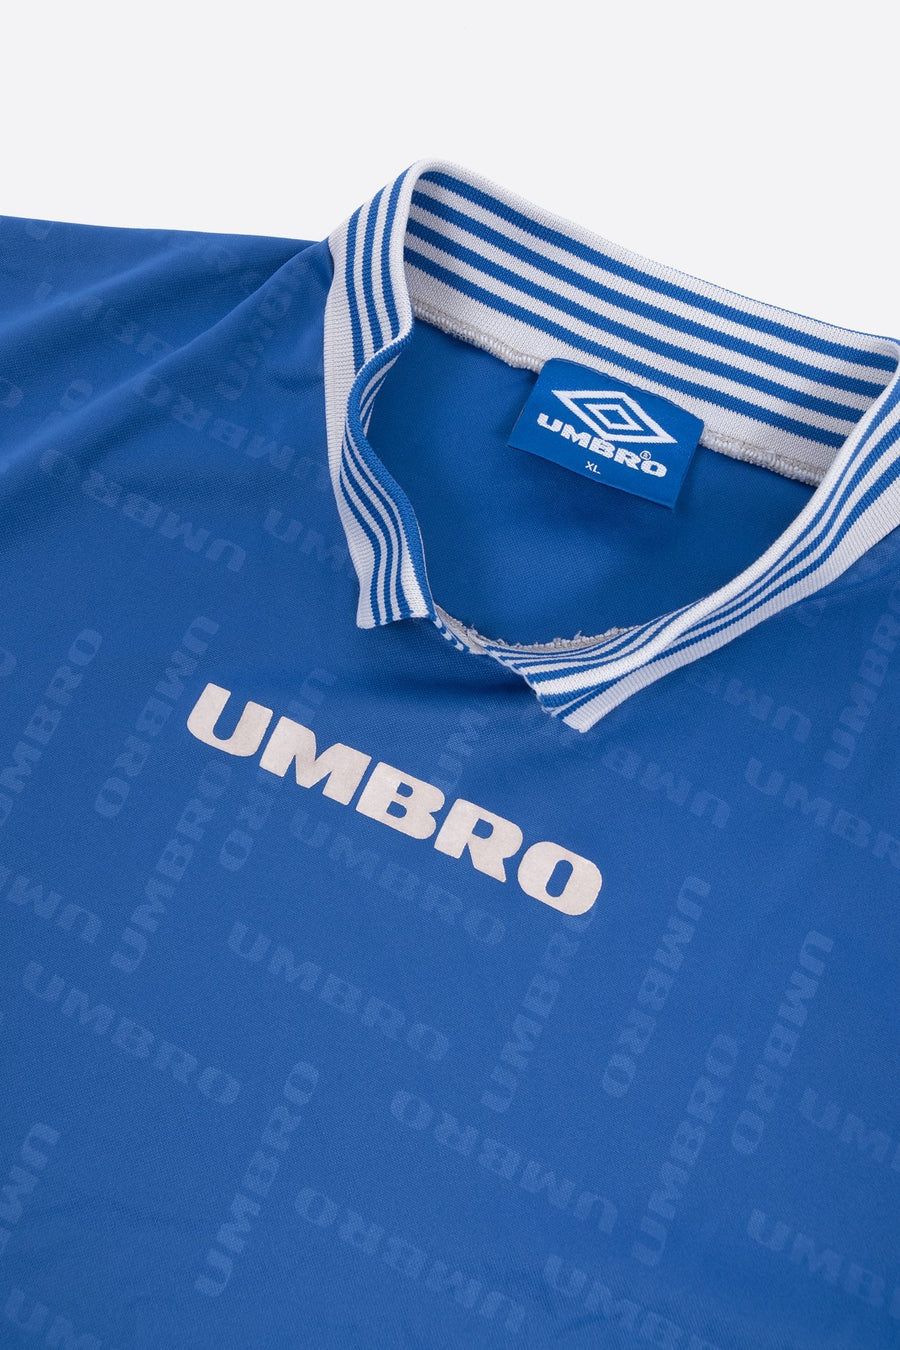 Maillot Umbro - WASTED PARIS